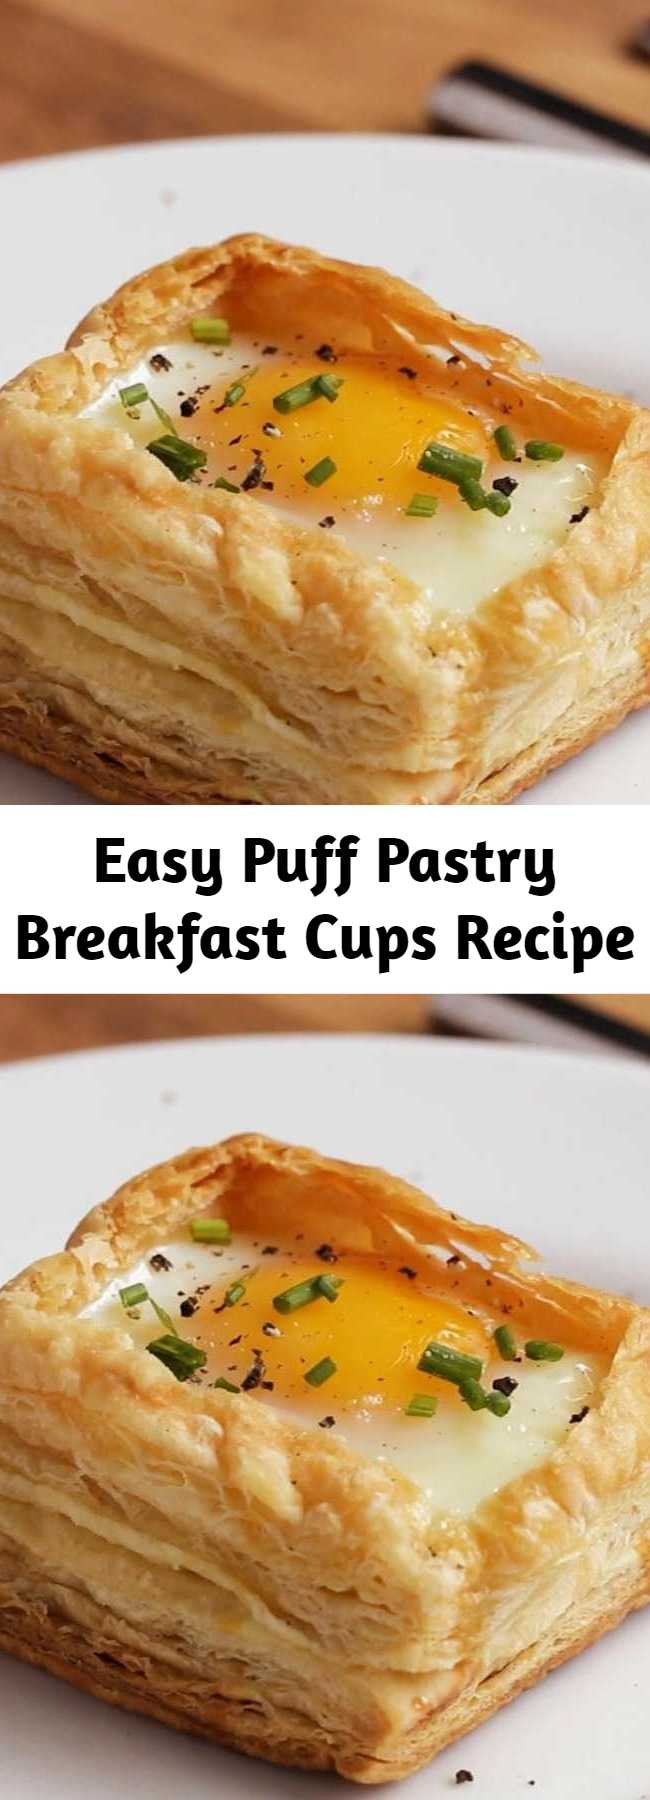 Puff Pastry Breakfast Cups Recipe.